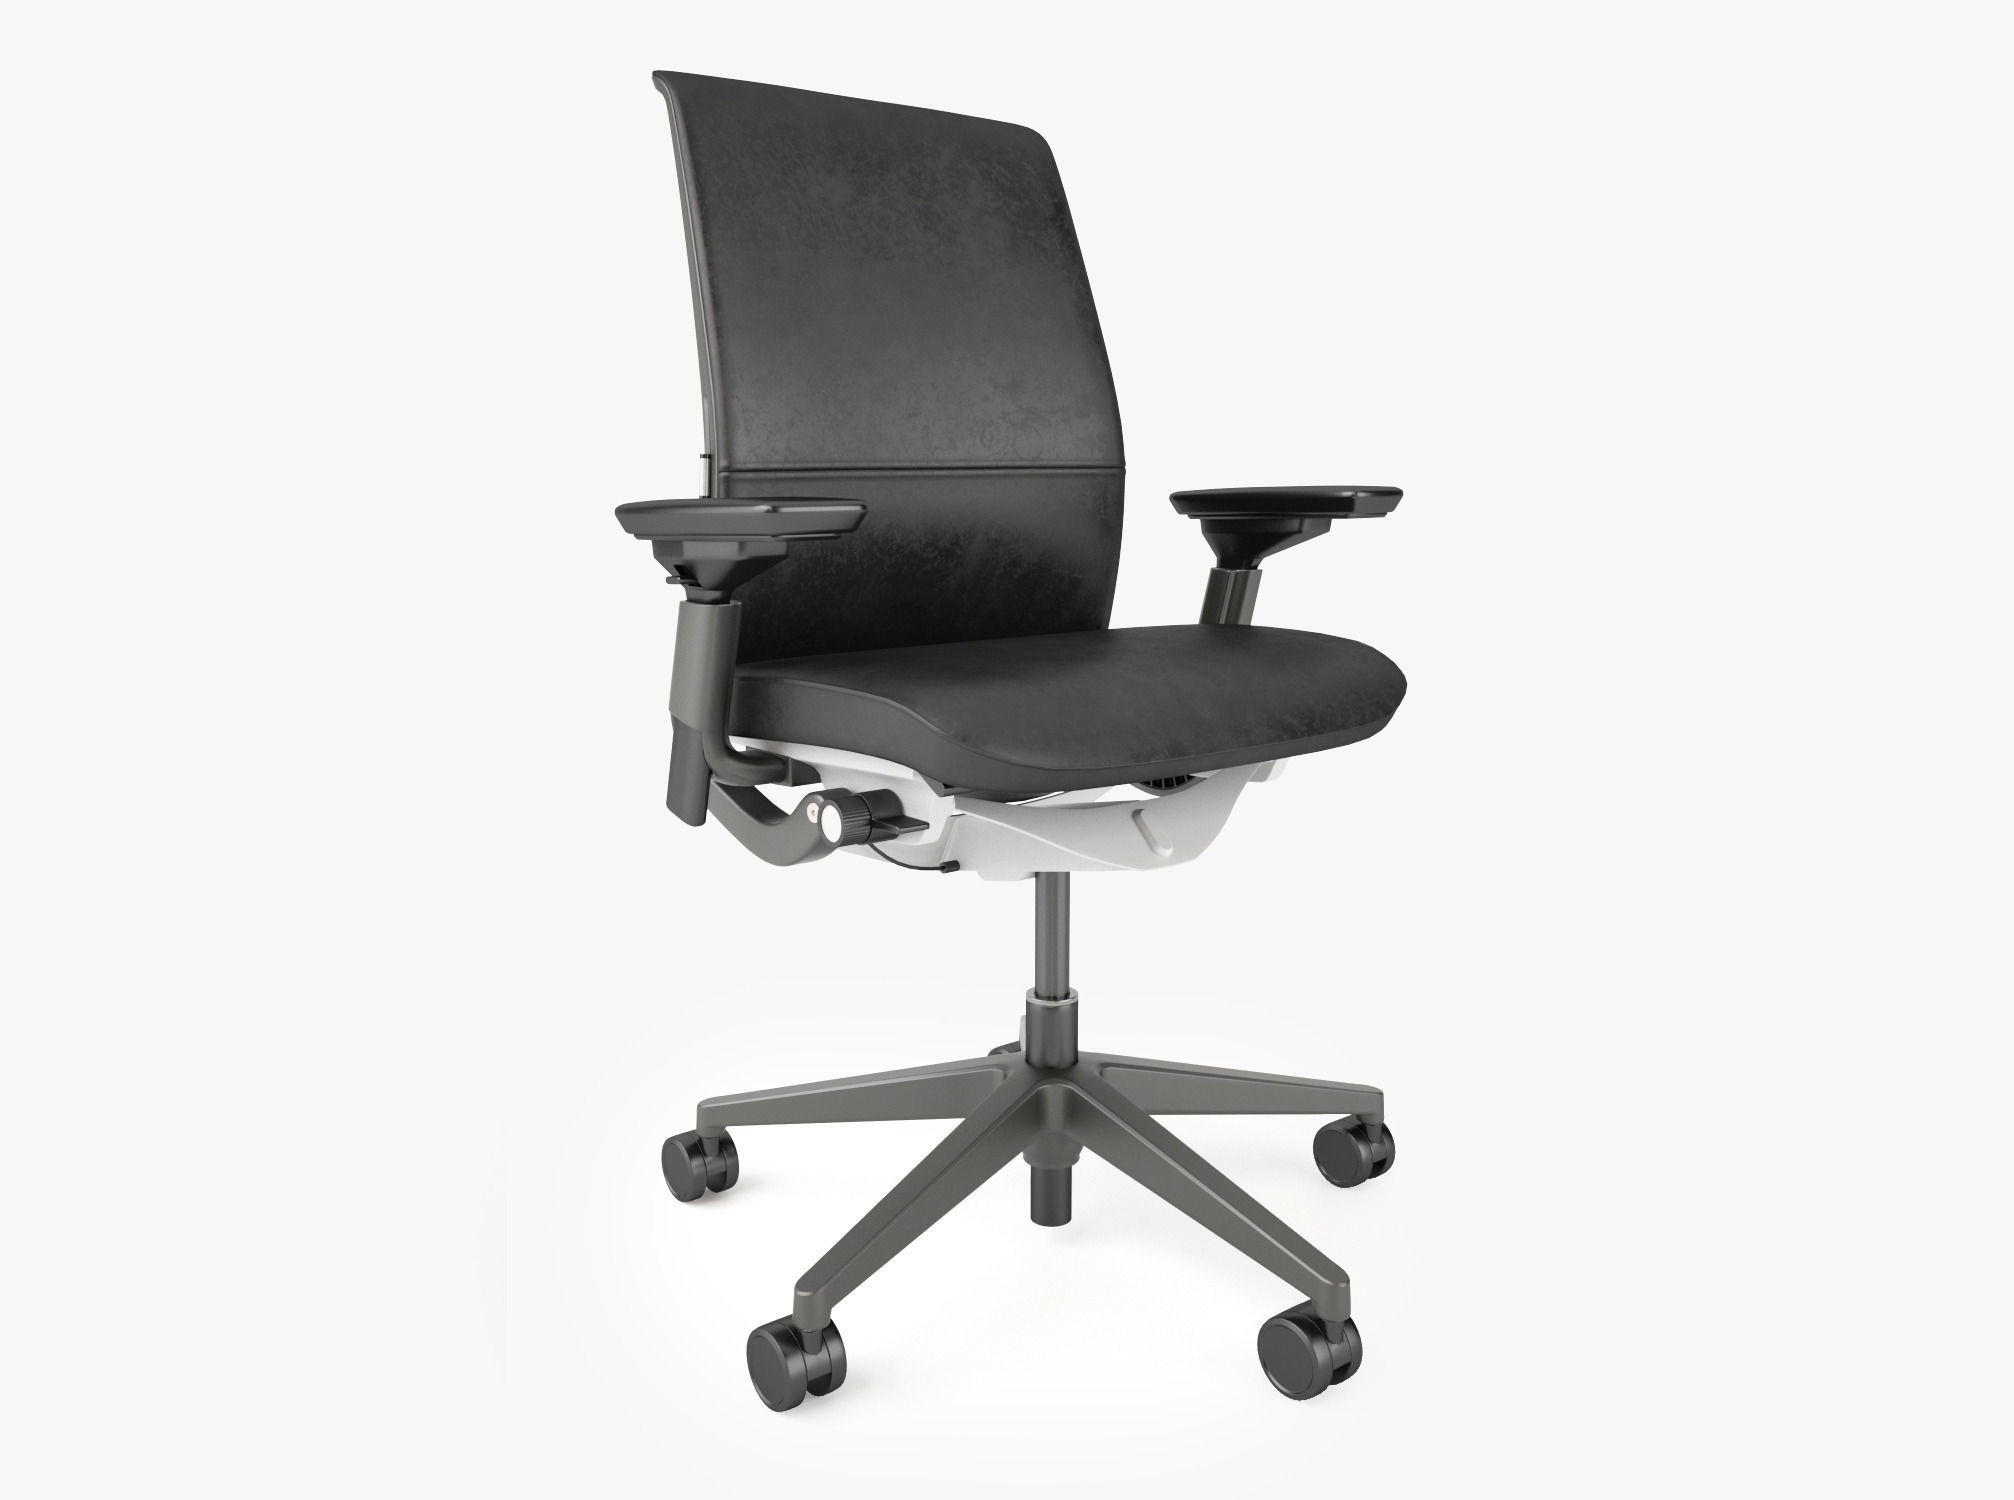 Steelcase Think Chair Crate And Barrel Steelcase Think Ebony Chair 3d Model